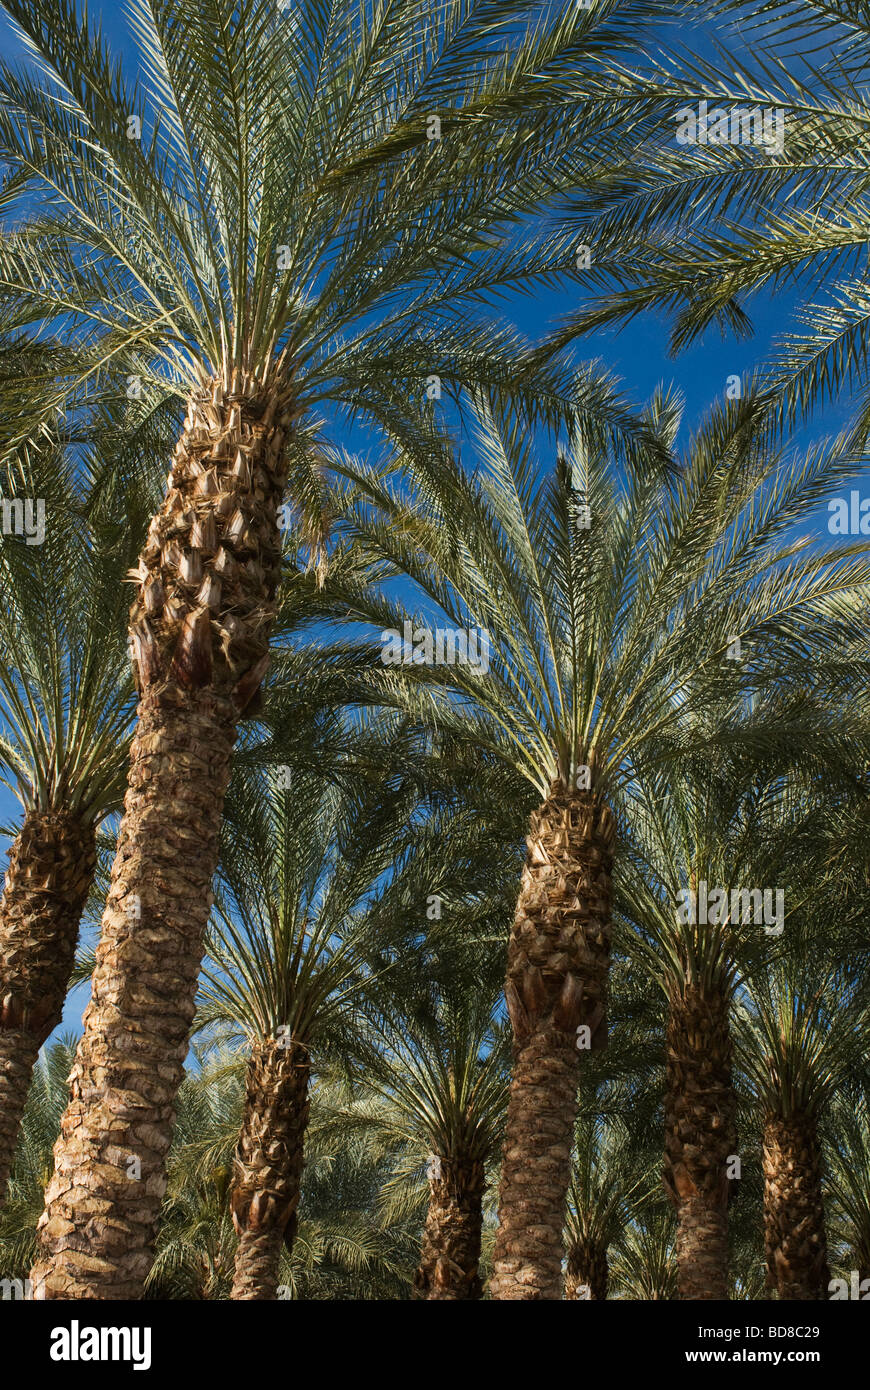 Royal Palms Indian Wells Palm Springs Southern California Stockbild